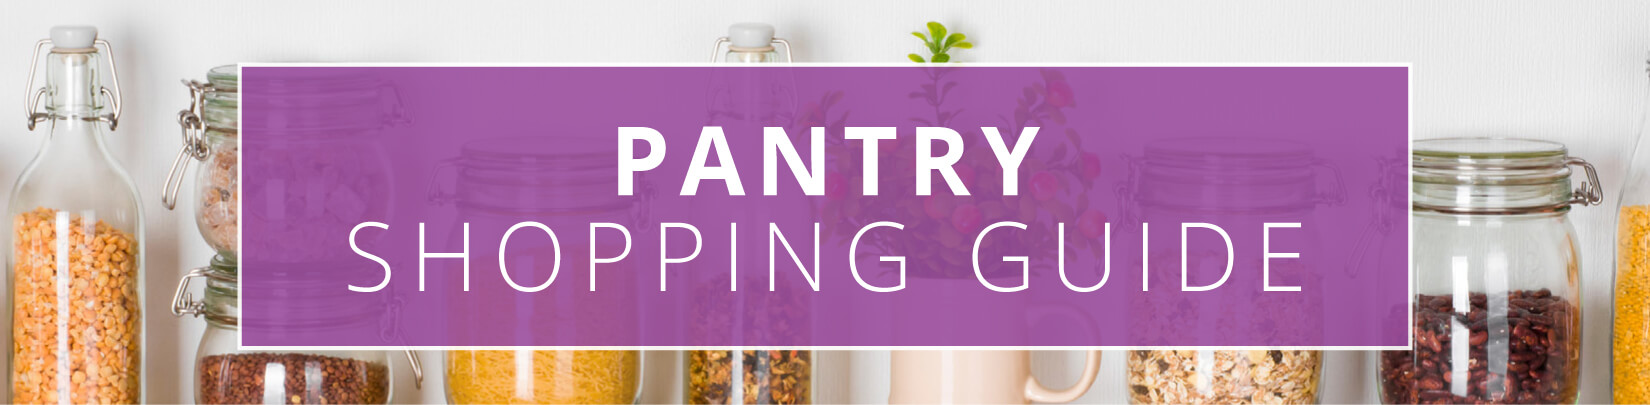 How to be Healthy Through This Pantry Transformation Makeover